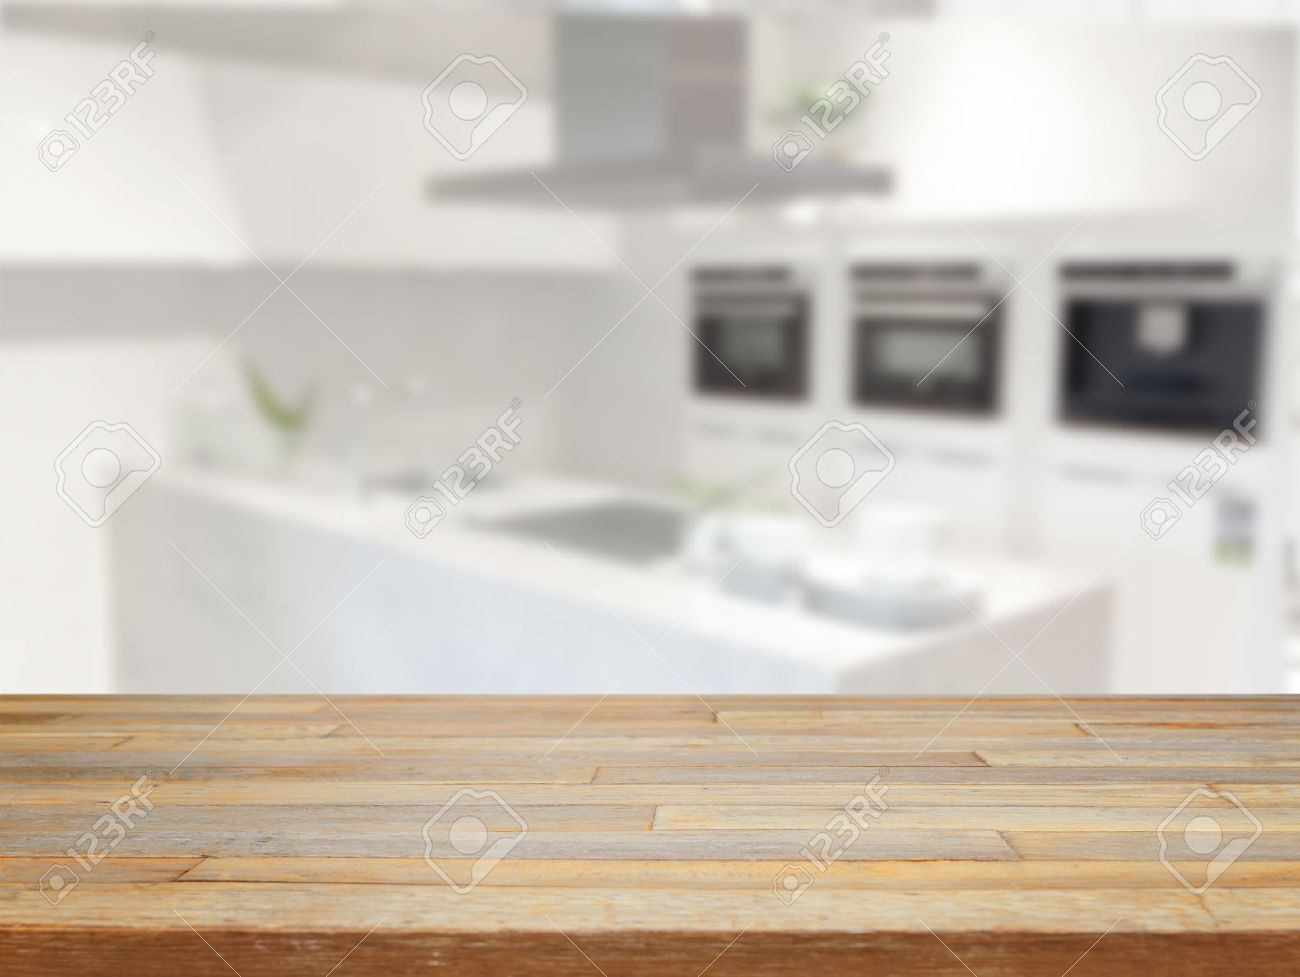 Empty wood table and blurred living room background stock photo - Empty Wooden Table And Blurred Kitchen Background Product Display Stock Photo 40383794